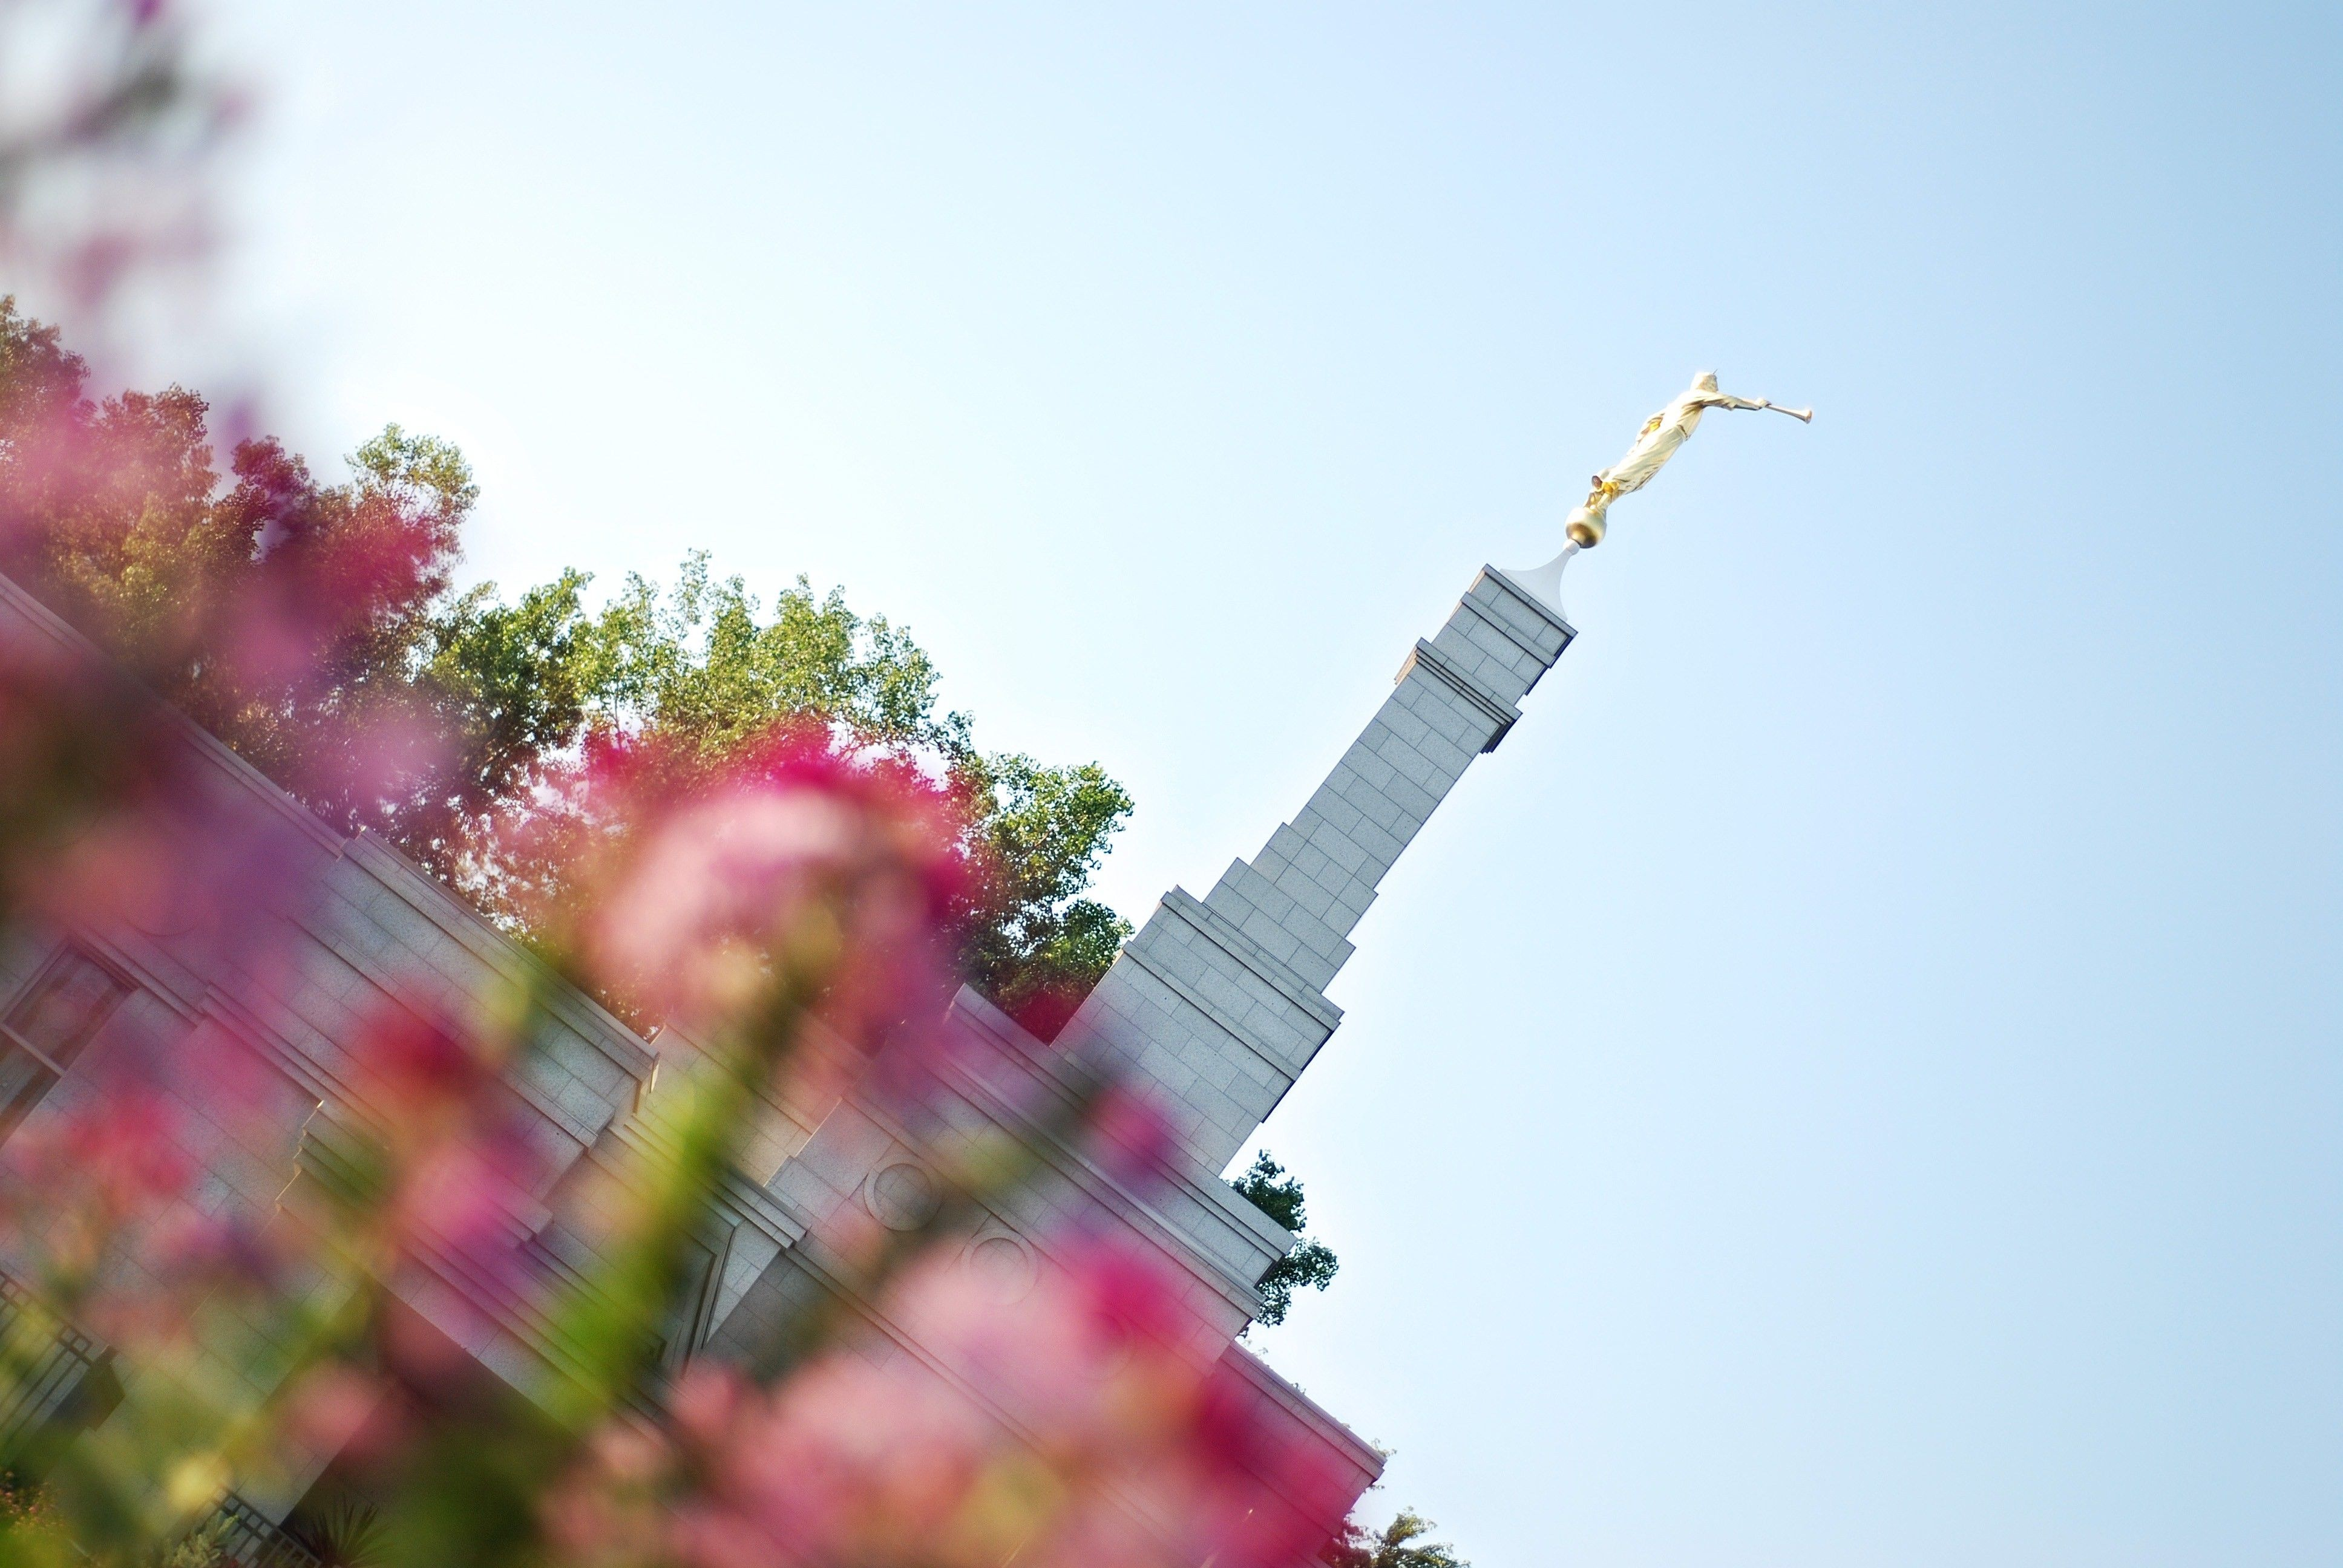 The St. Paul Minnesota Temple spire, including scenery.